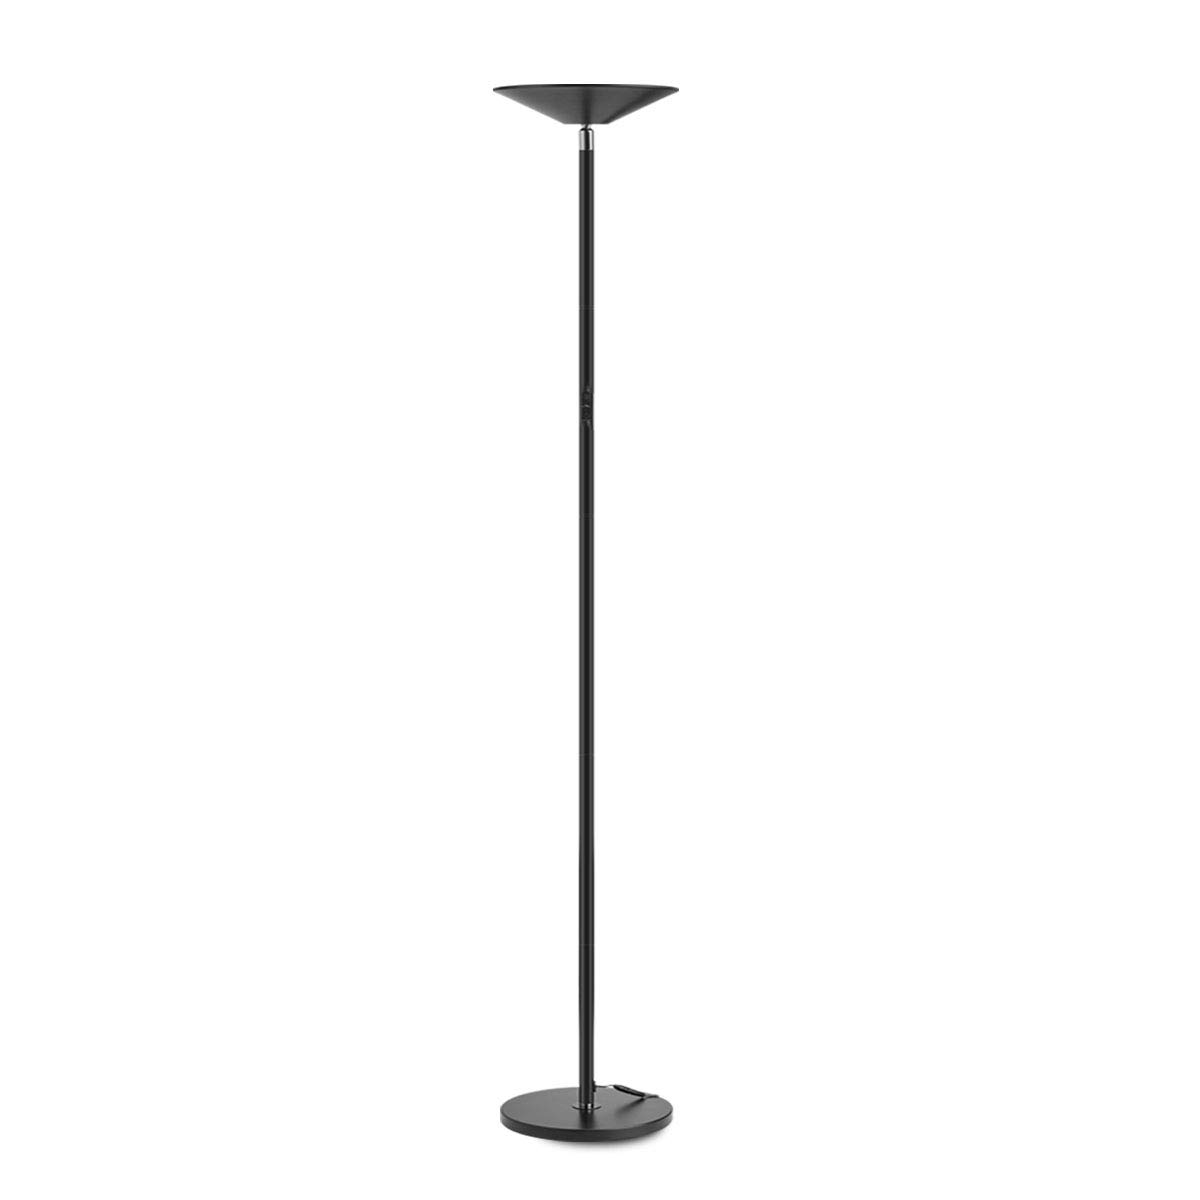 Floor Lamp, LED Torchiere Super Bright Floor Lamps, Dimmable 20W LED Floor Light with Touch Control and Wall Switch, Standing Lamp with Stepless Dimmer for Living Room and Bedroom. 90° Adjustable Top.